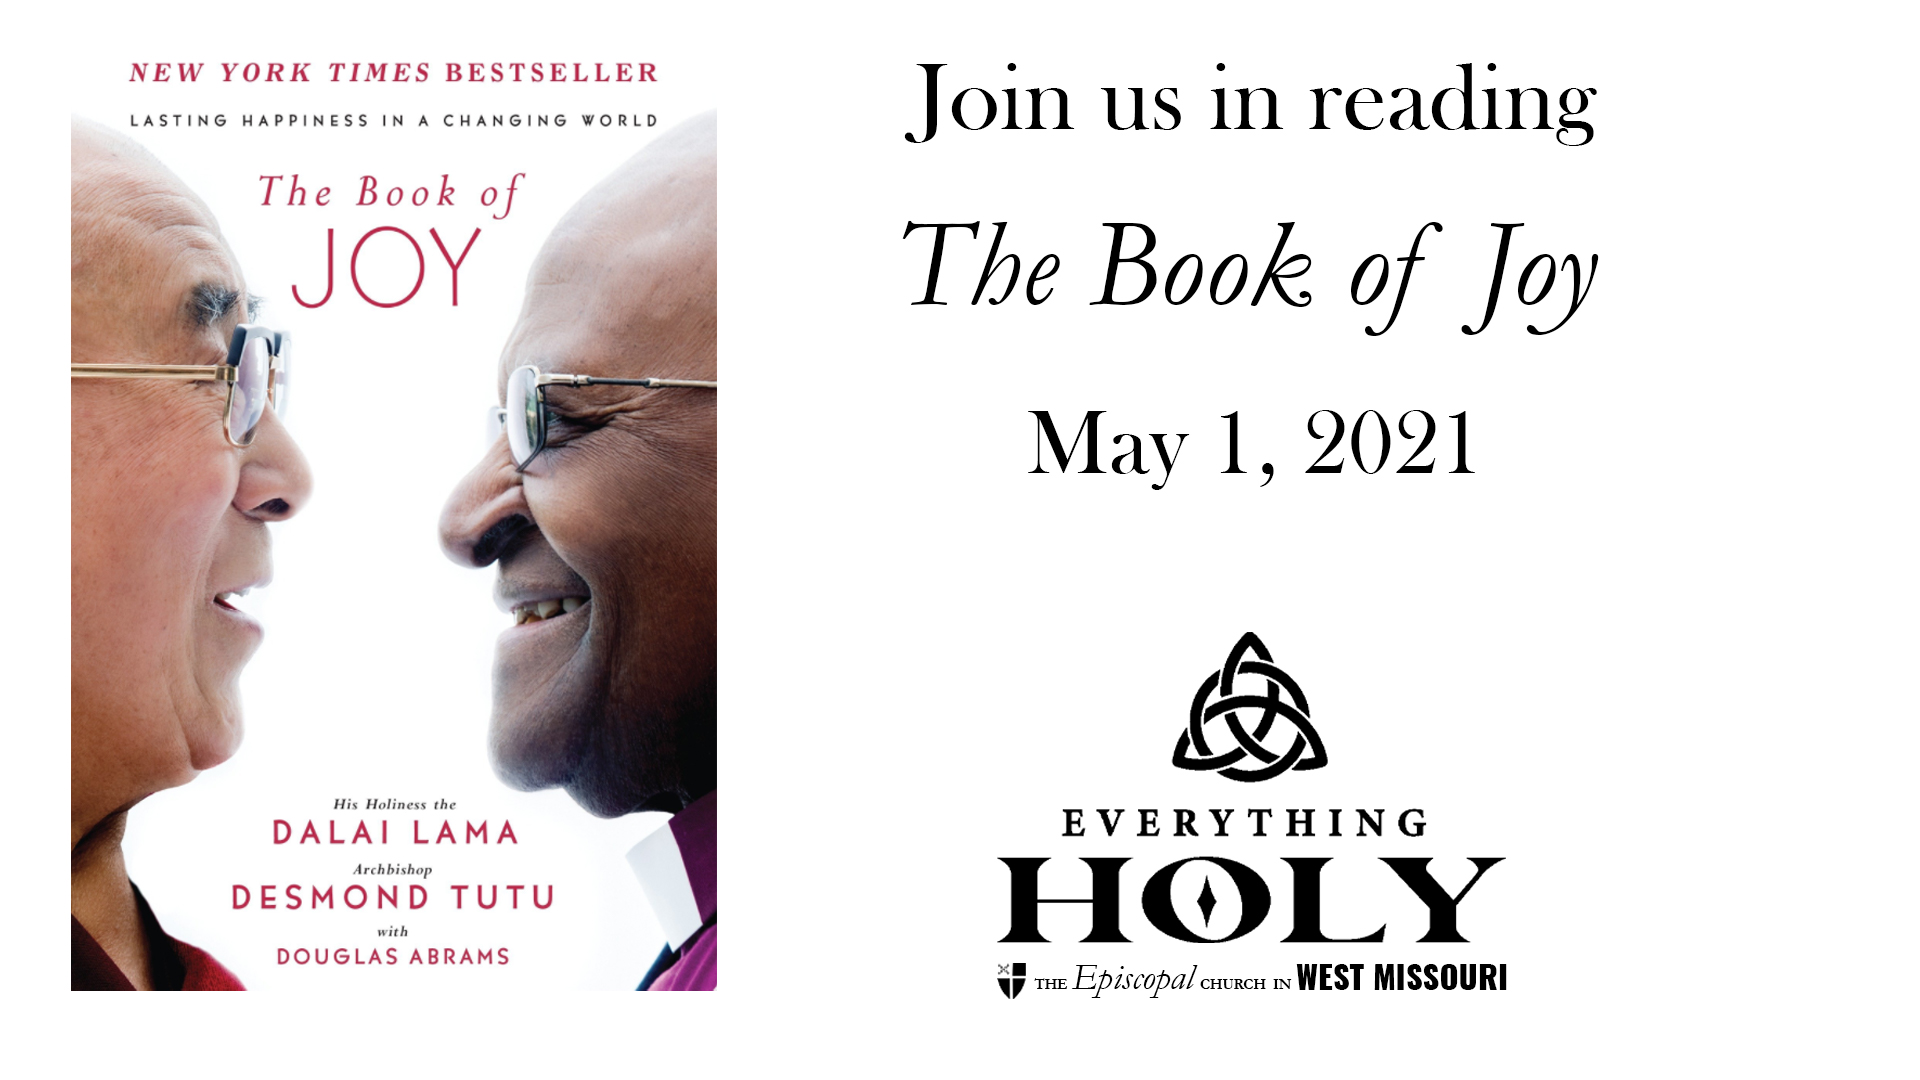 Join us in reading 'The Book of Joy,' starting May 1